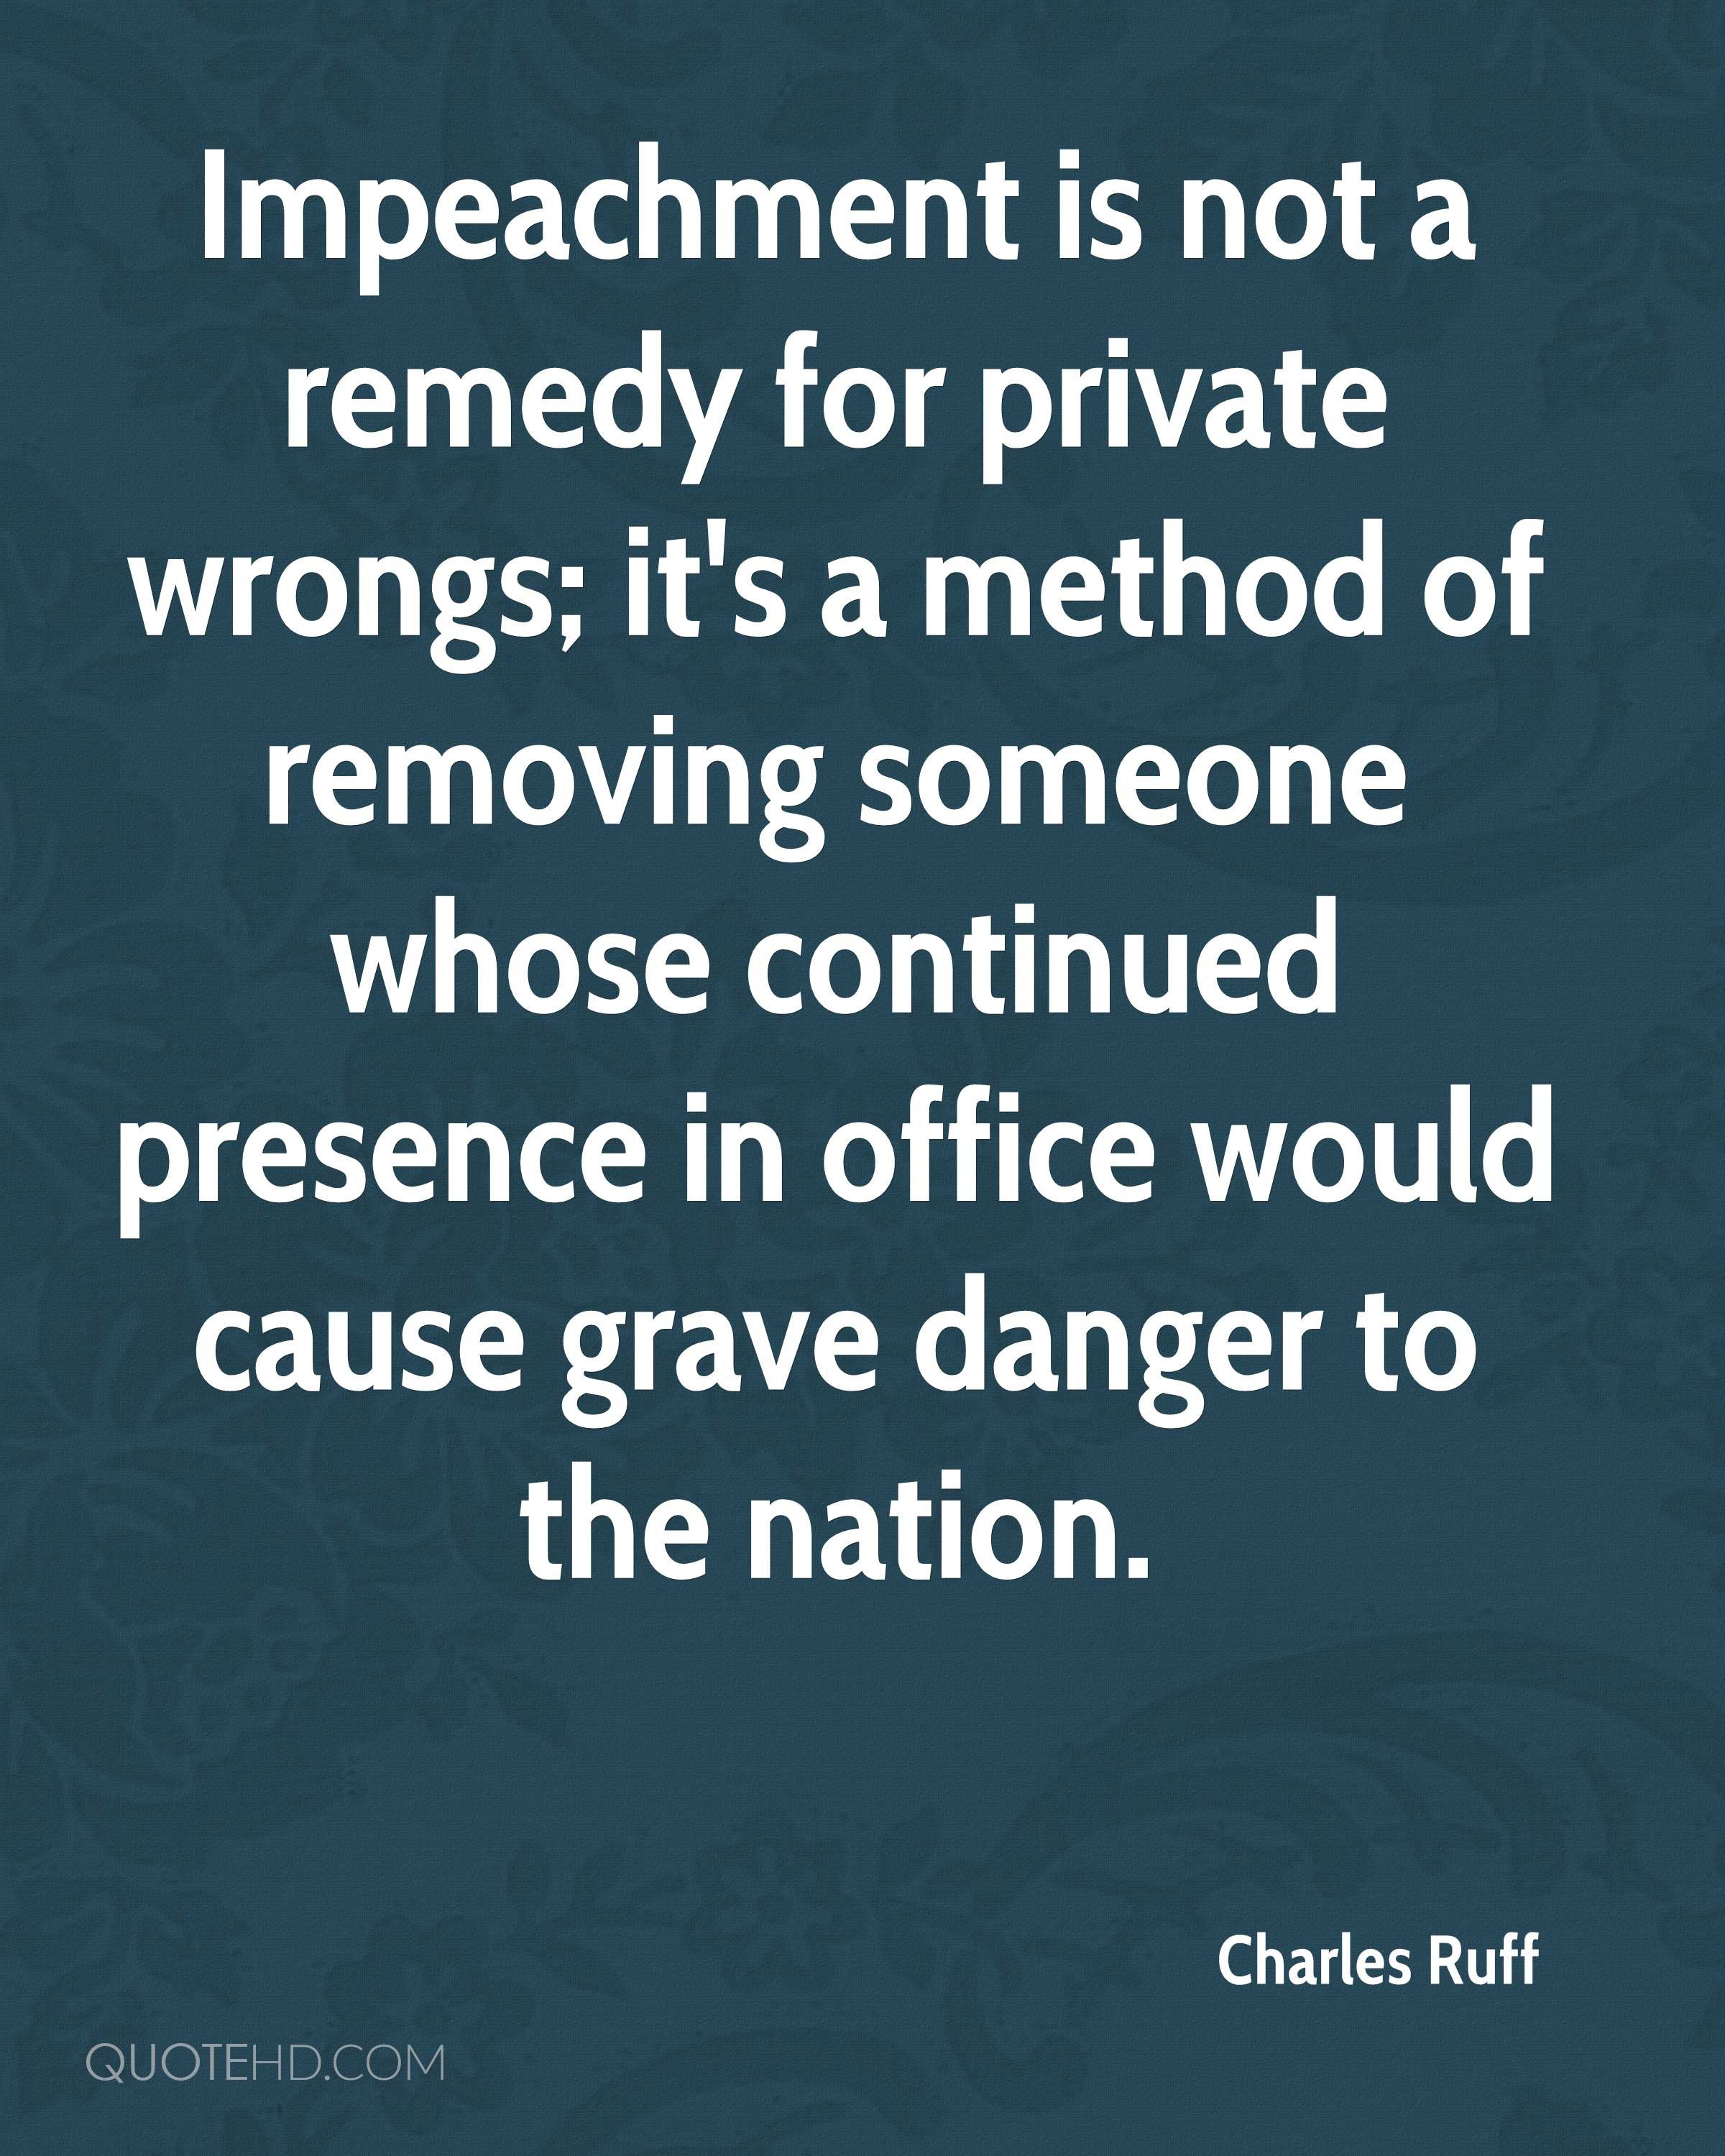 Impeachment is not a remedy for private wrongs; it's a method of removing someone whose continued presence in office would cause grave danger to the nation.